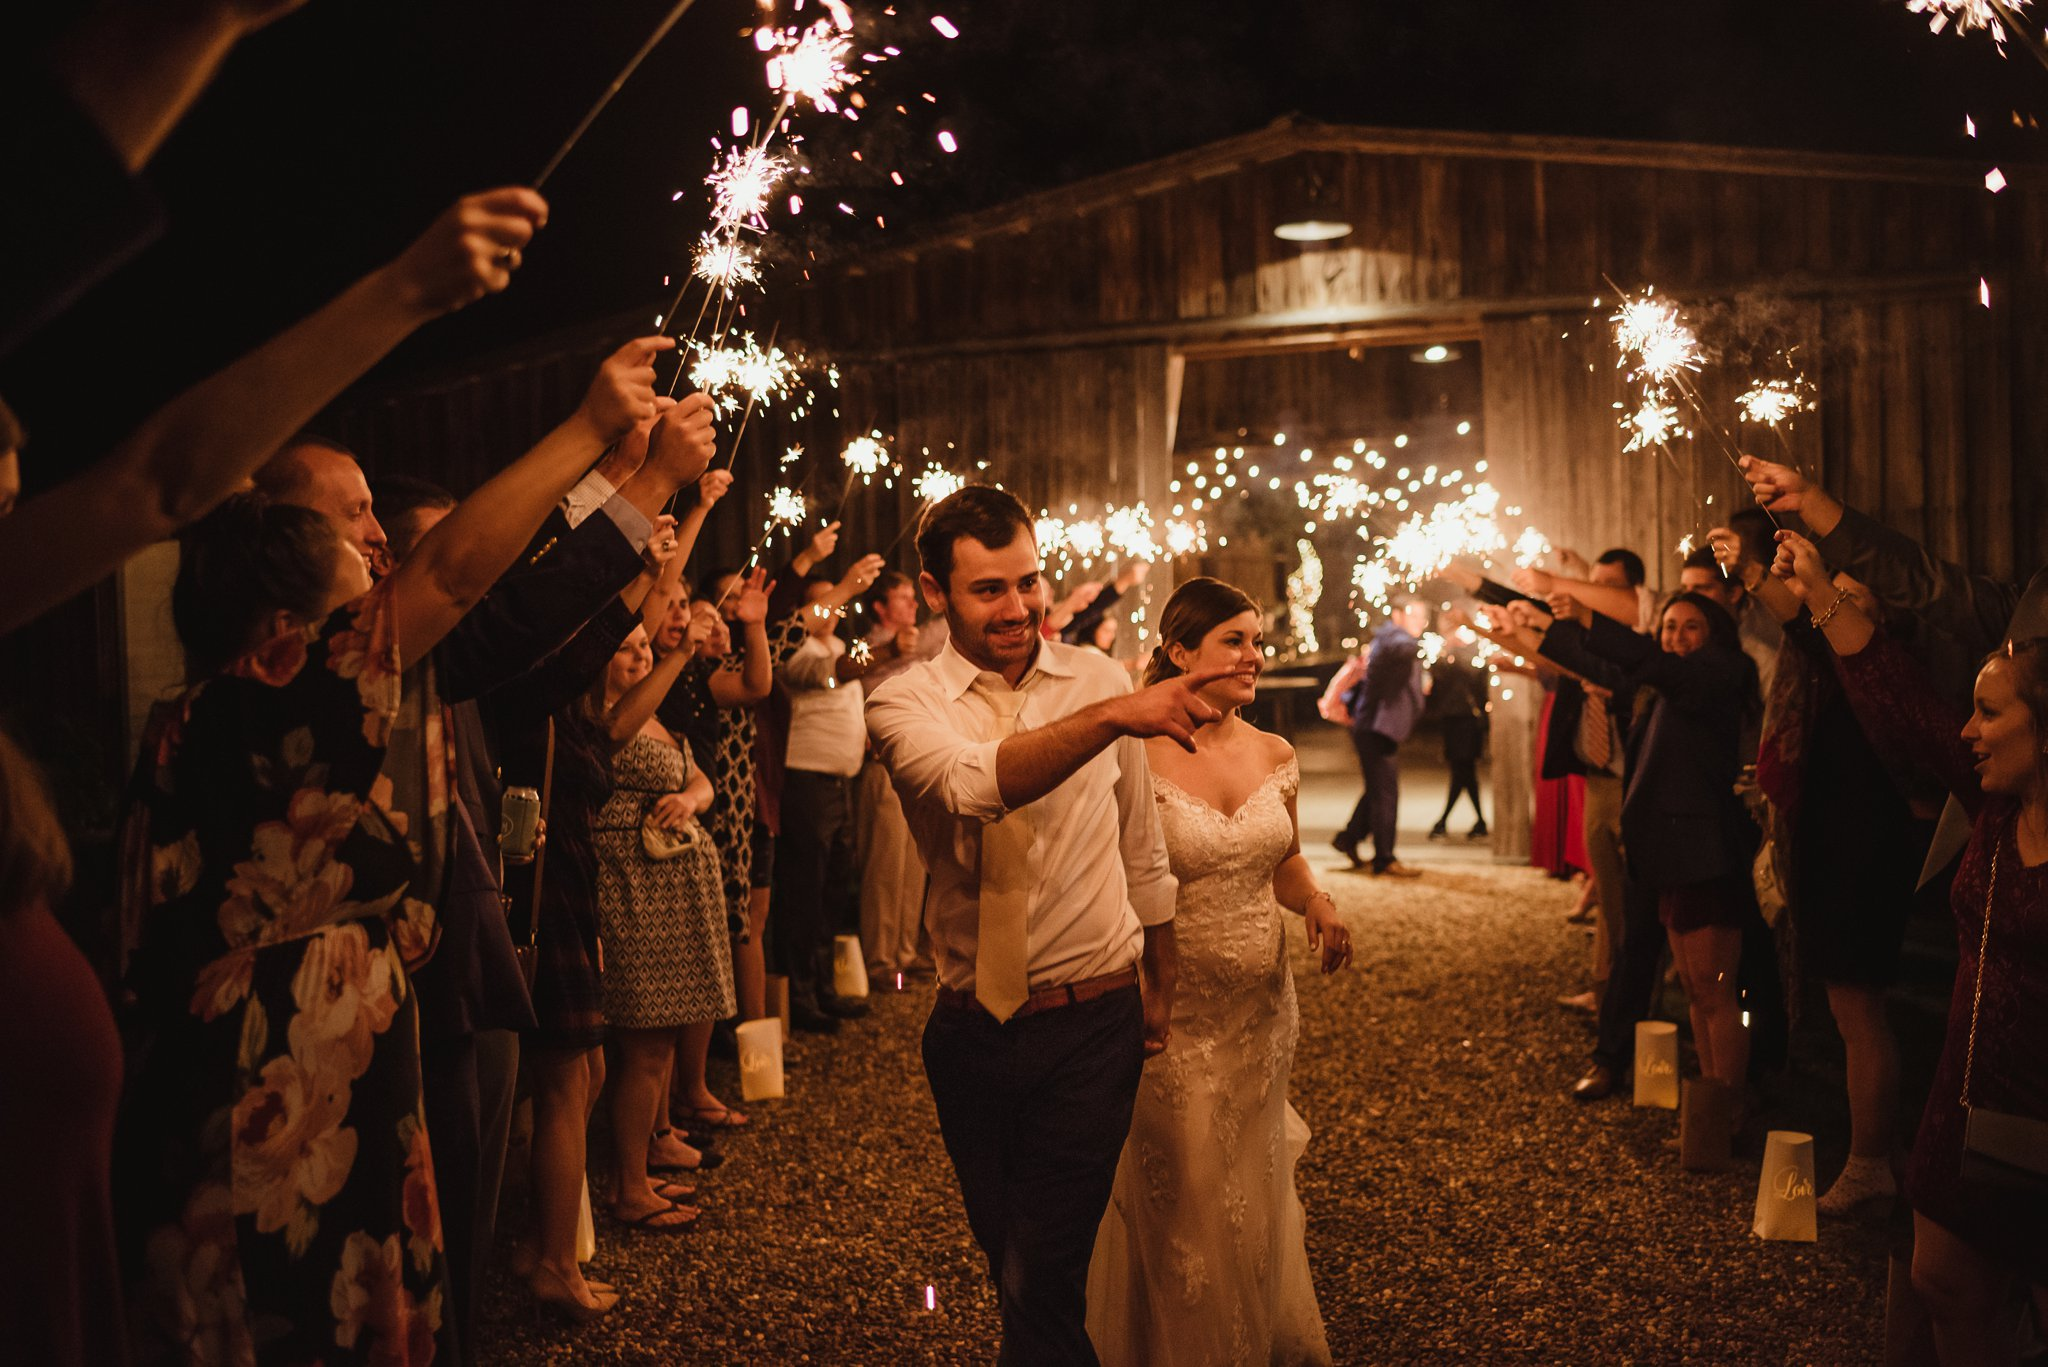 The bride and groom walk off happy during their sparkler send off after their wedding reception at the Little Herb House in Raleigh, North Carolina. Photos by Rose Trail Images.